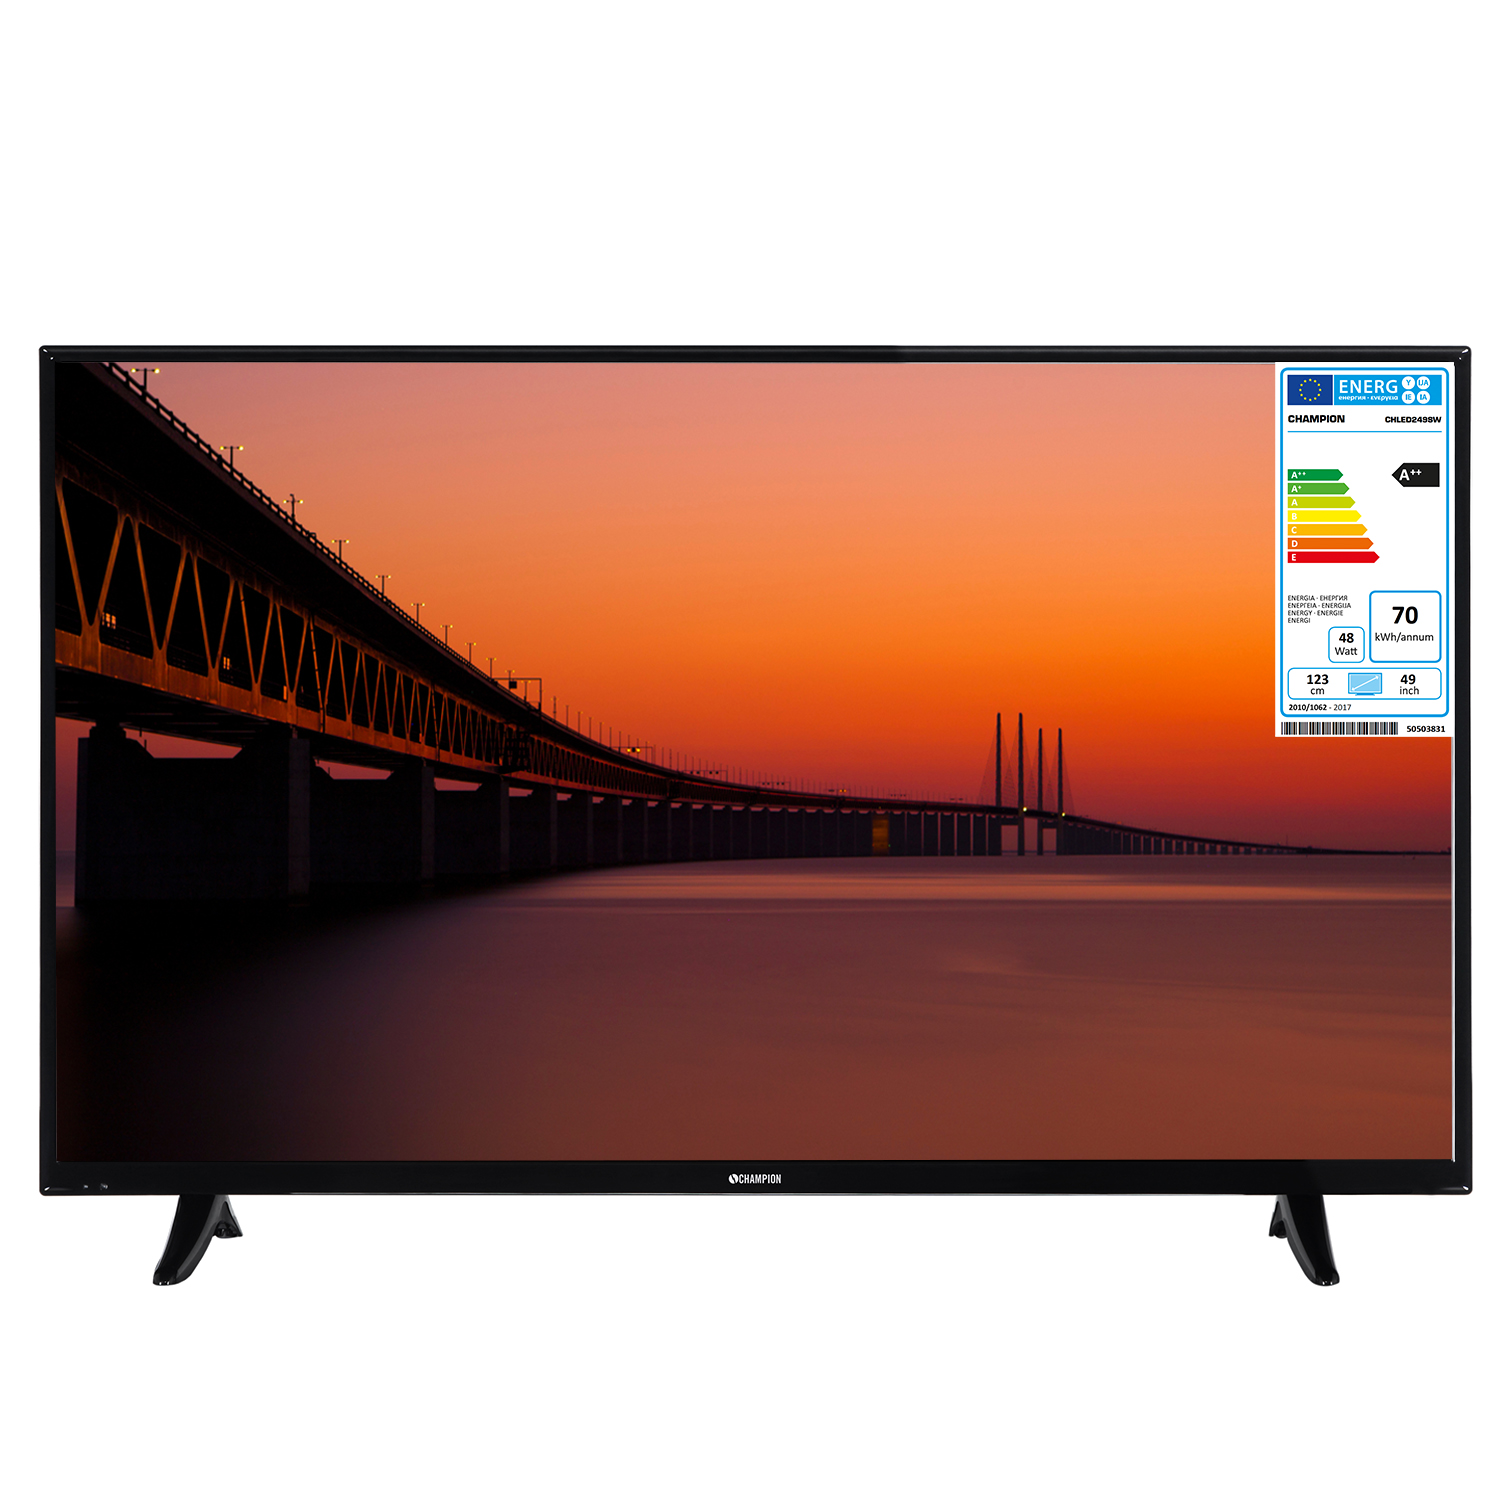 "TV LED 49"" DLED Smart/WiFi"